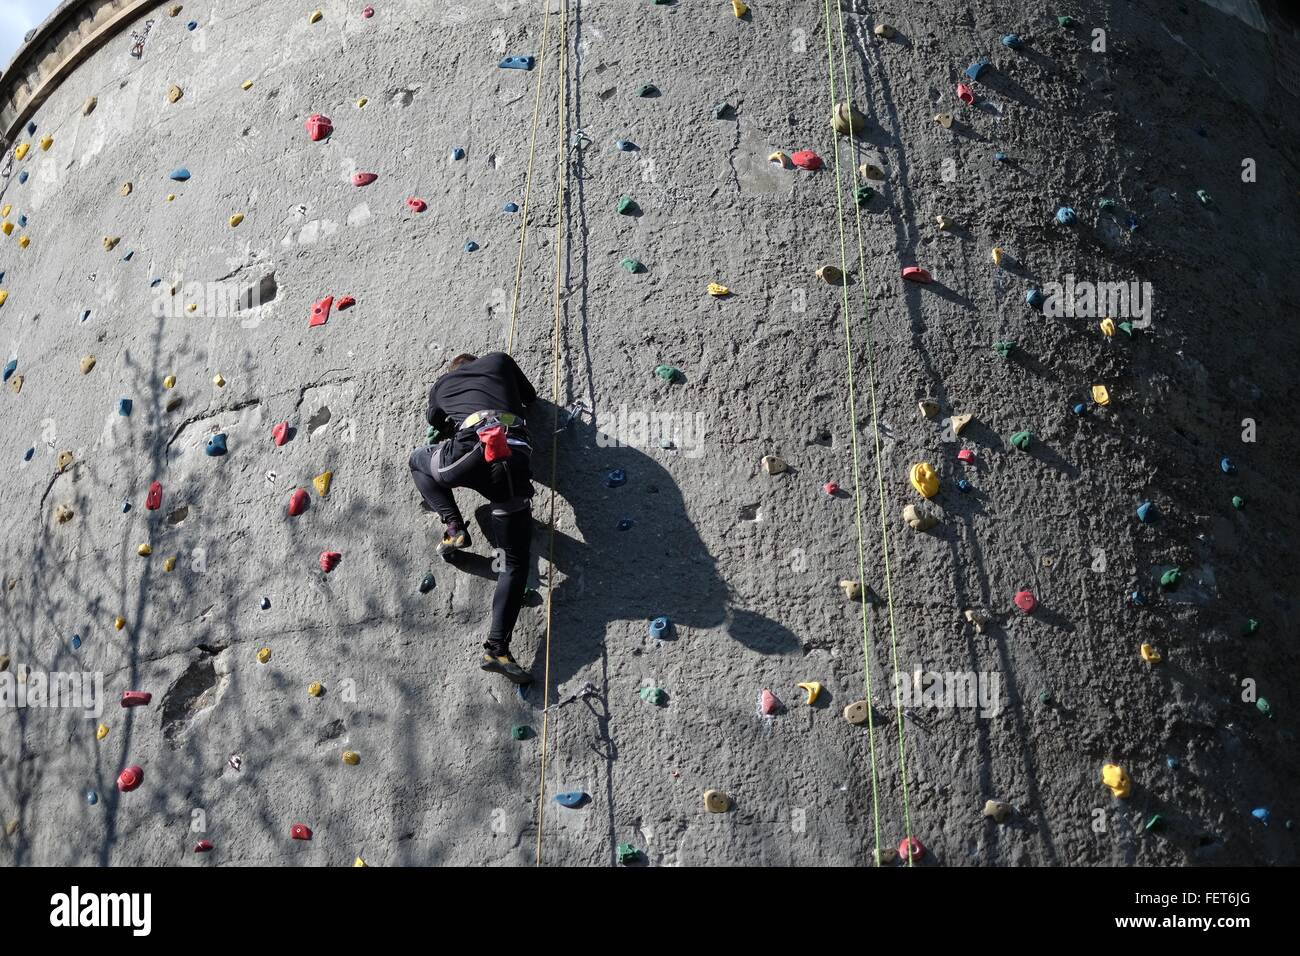 Low Angle View Of Man On Climbing Wall - Stock Image